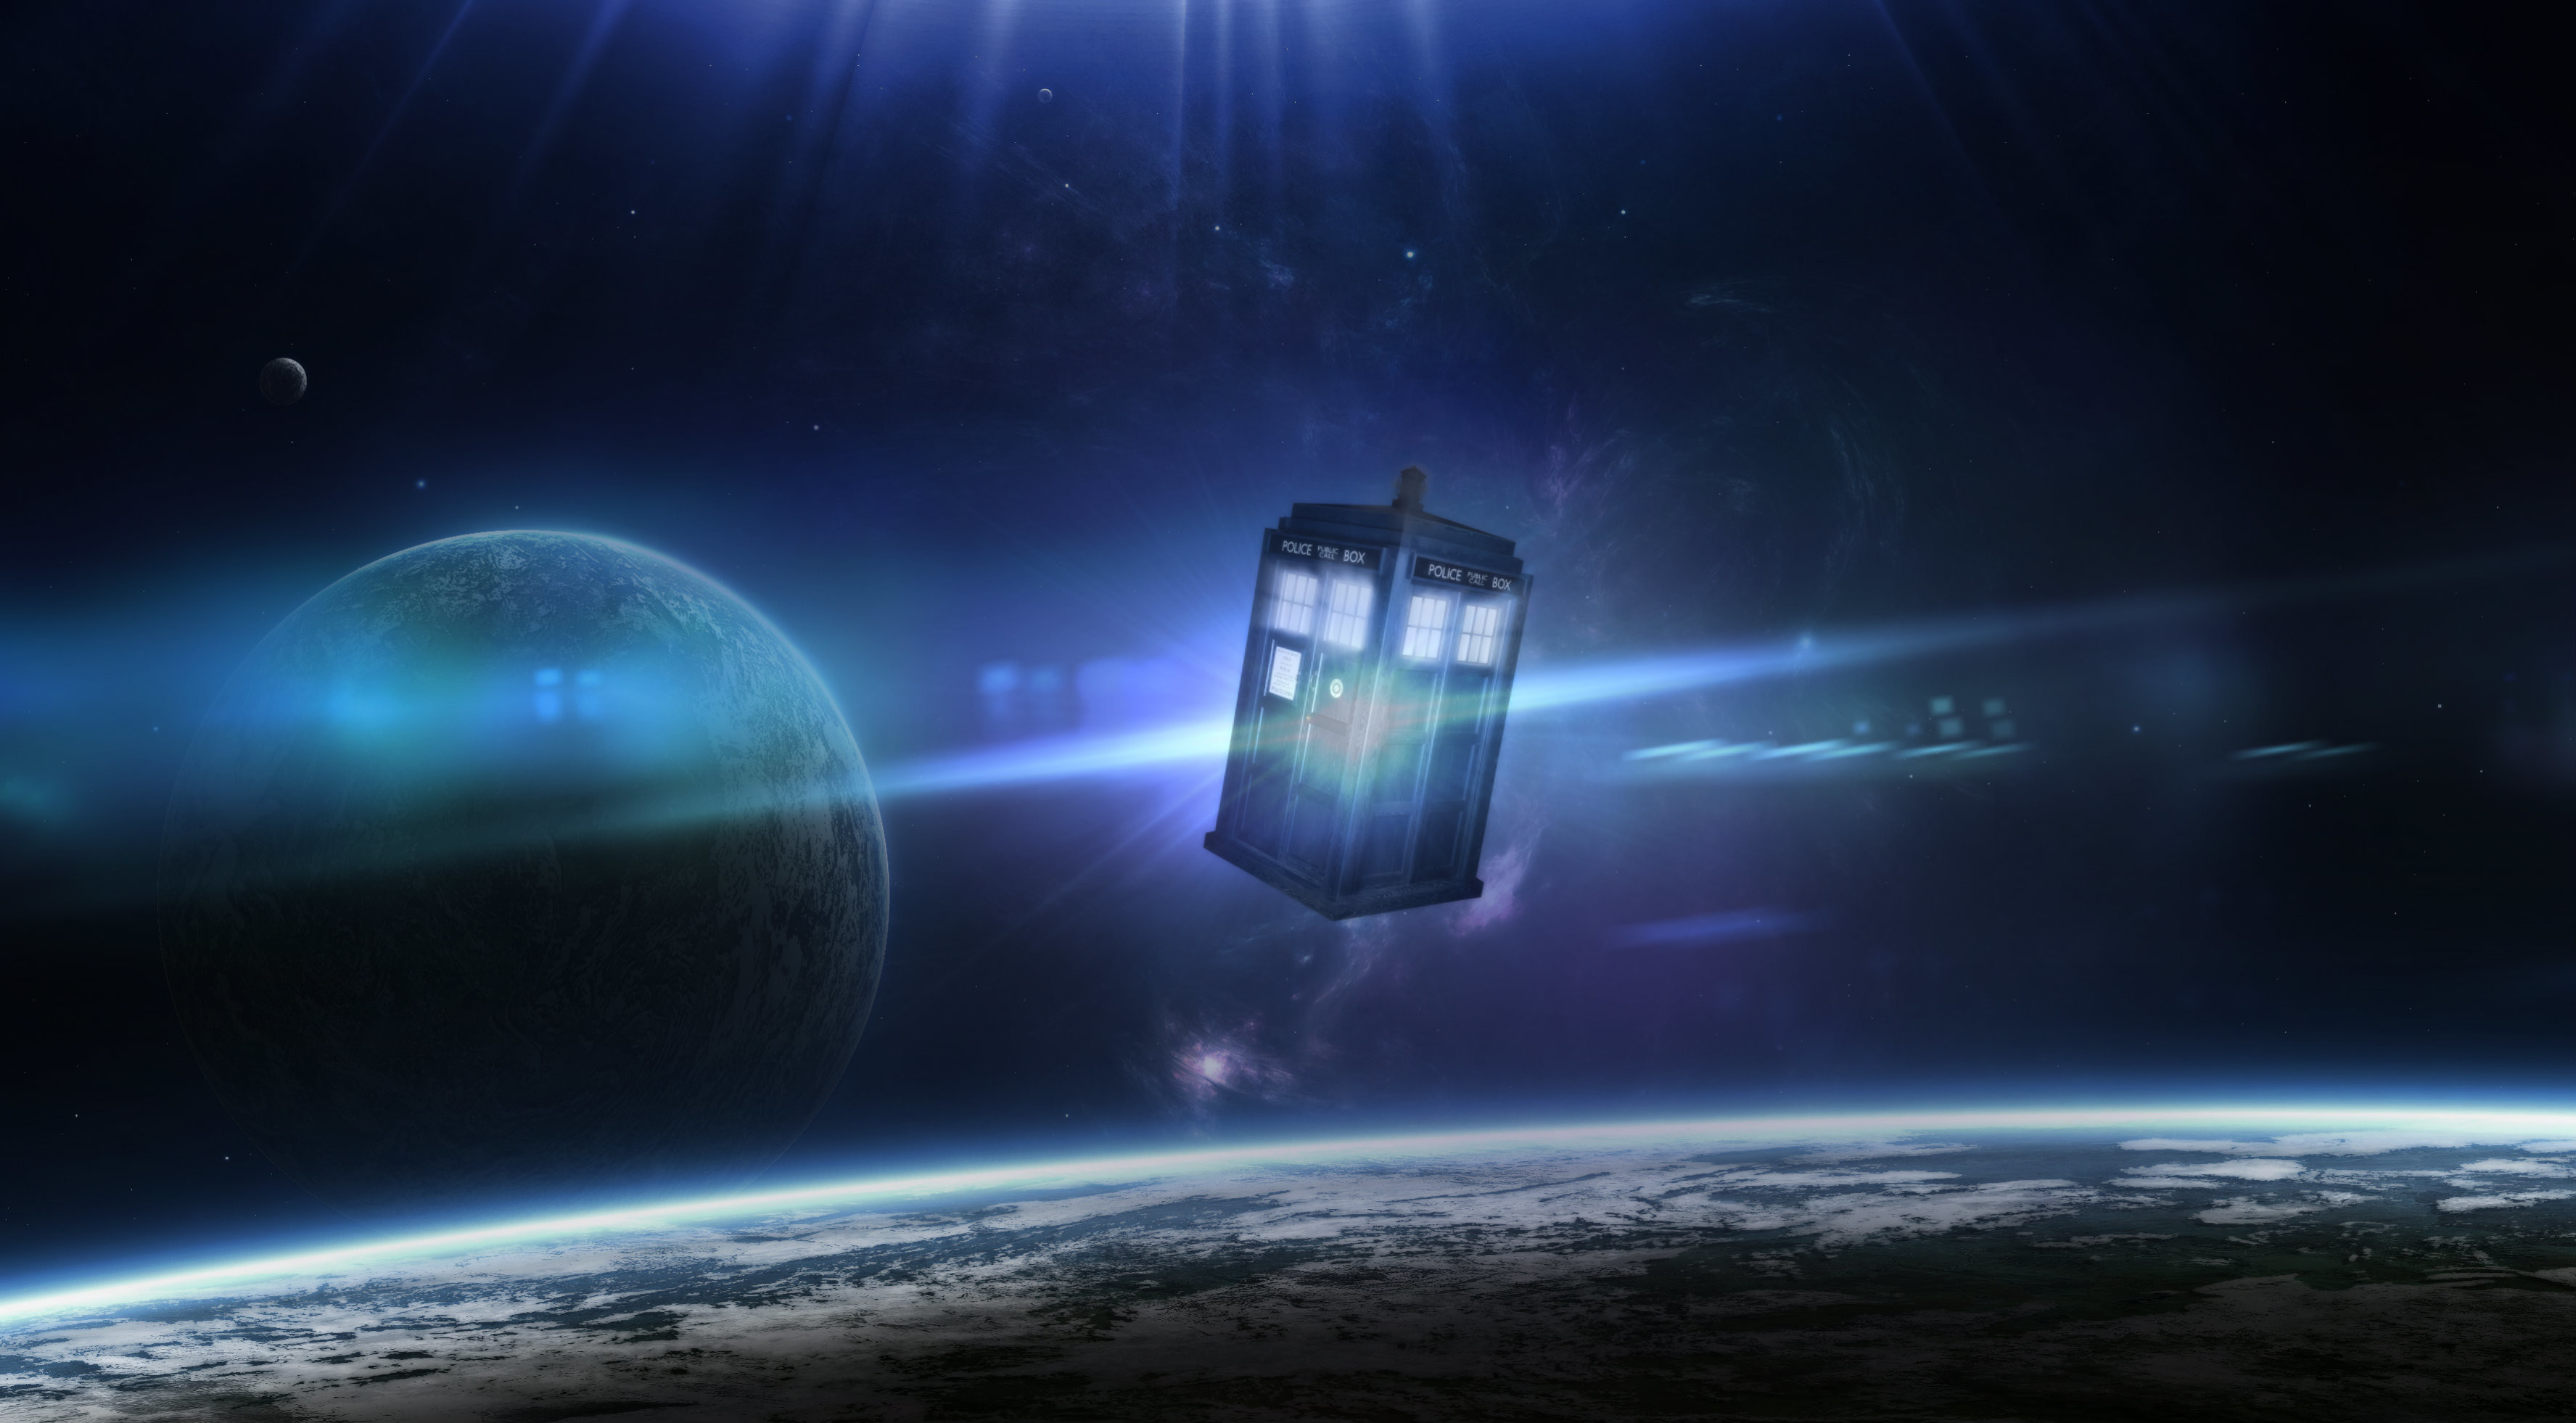 Doctor Who Wallpaper 1366x768 ·① WallpaperTag